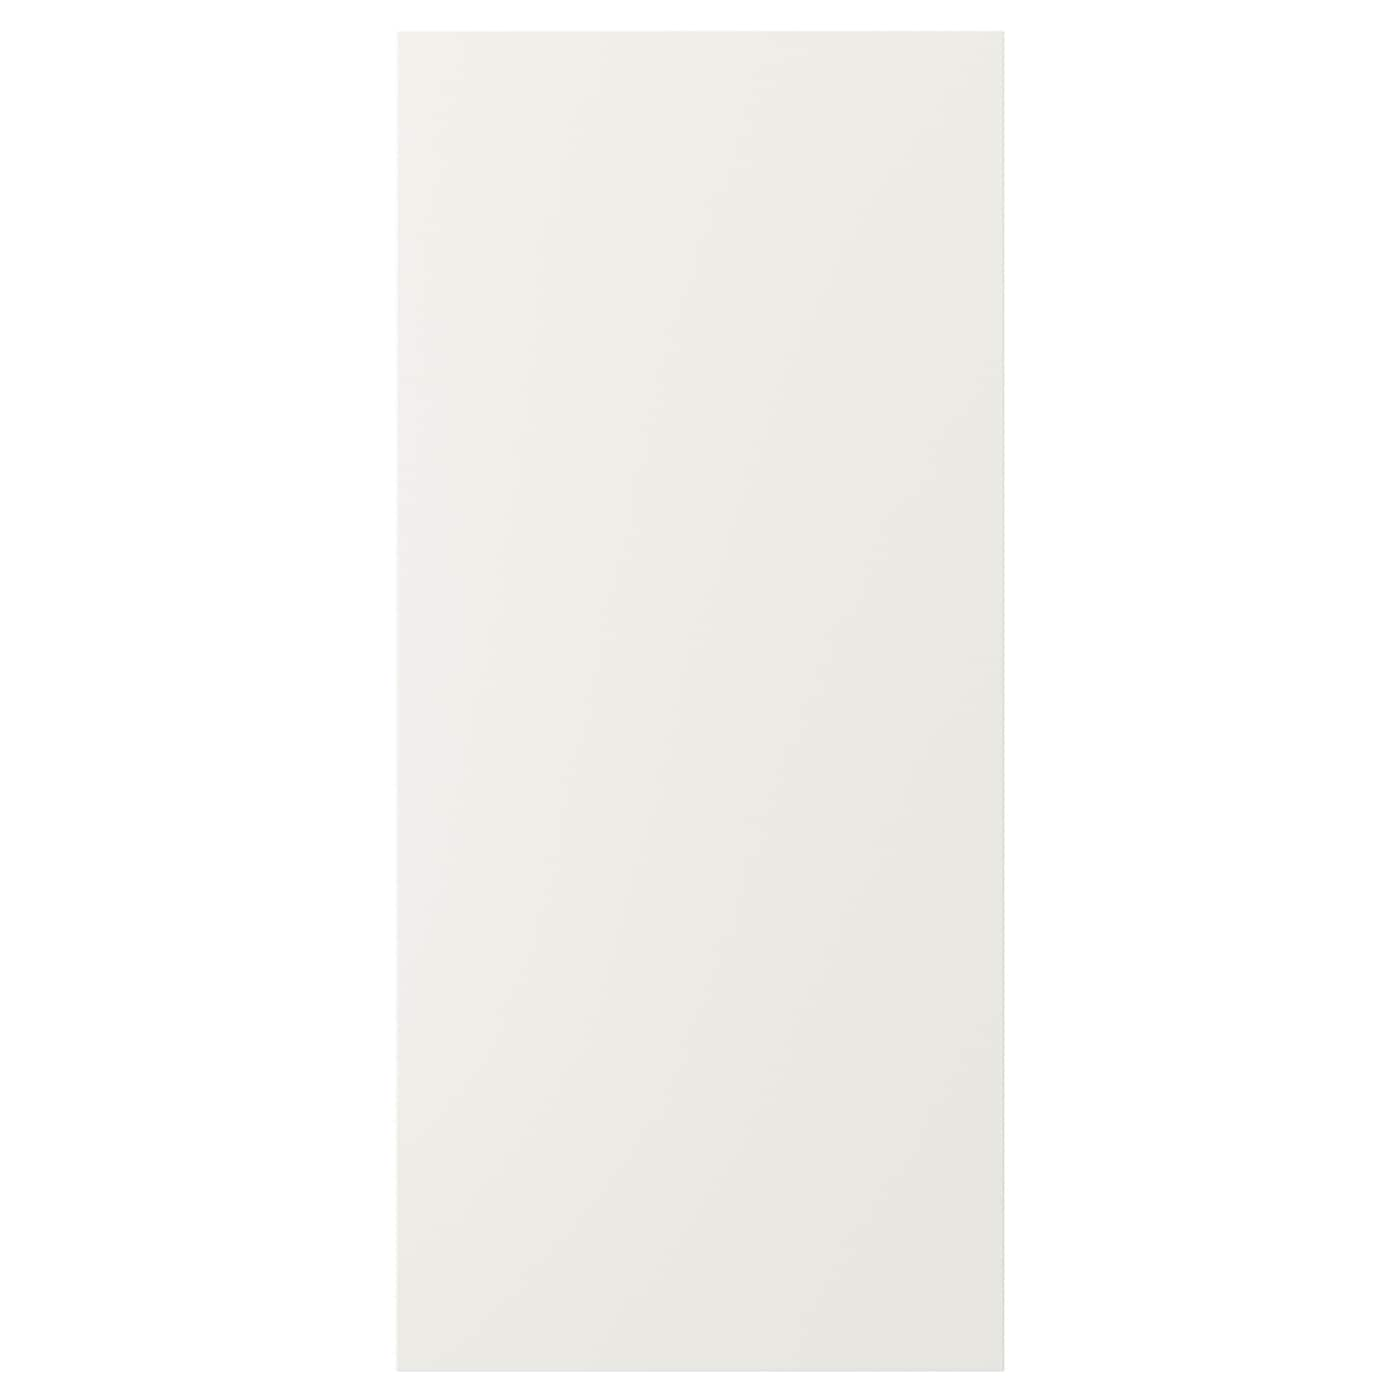 IKEA FÖRBÄTTRA cover panel 25 year guarantee. Read about the terms in the guarantee brochure.